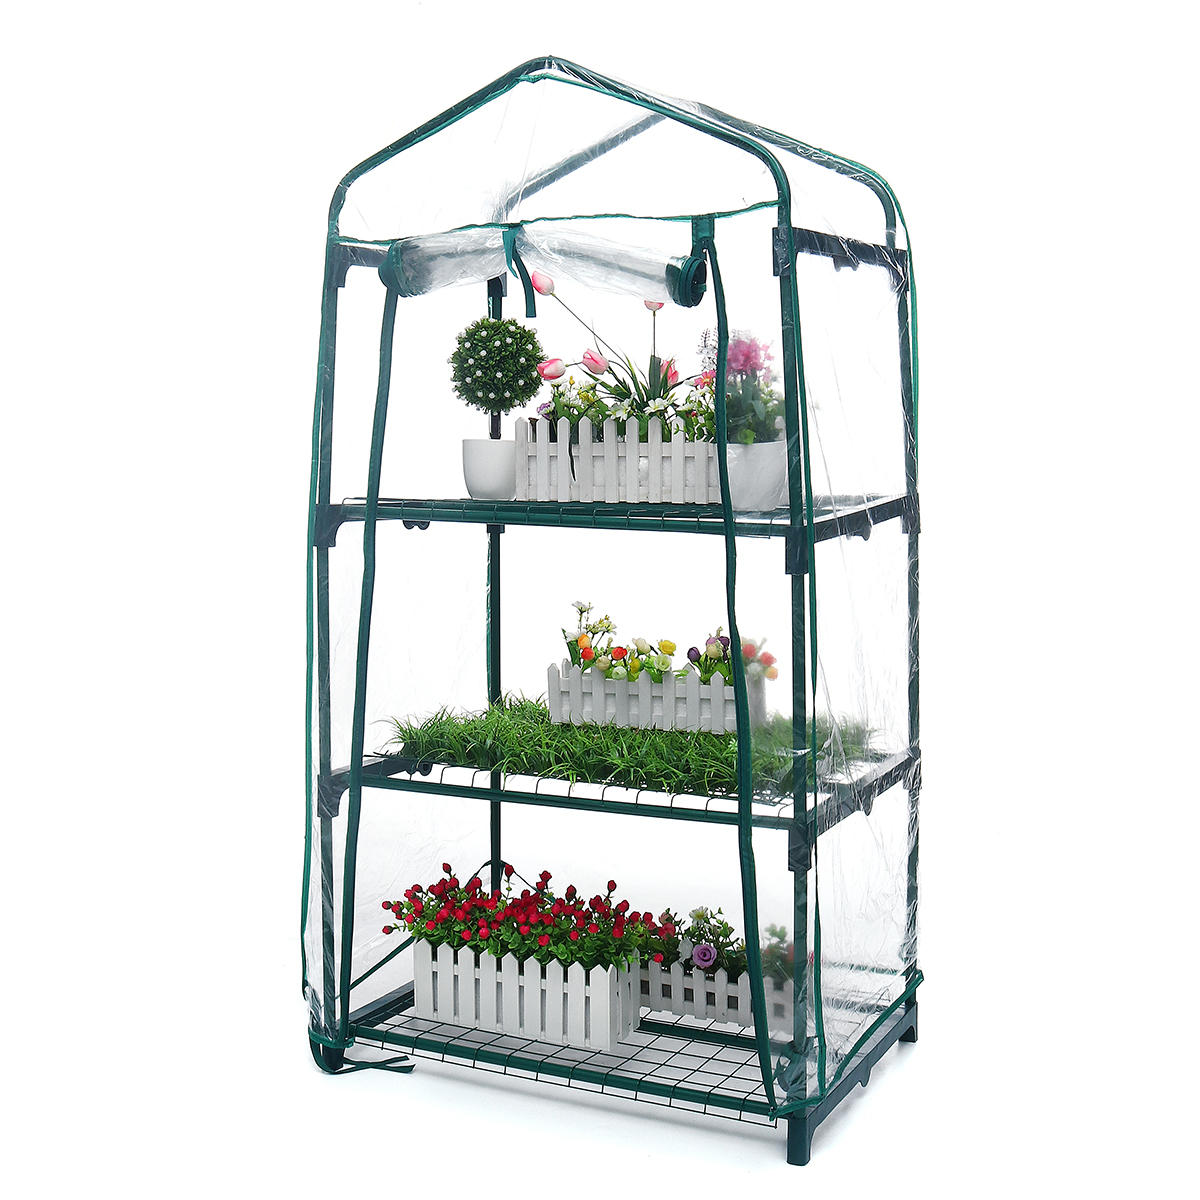 Backyard Indoor Outdoor Plant Greenhouse